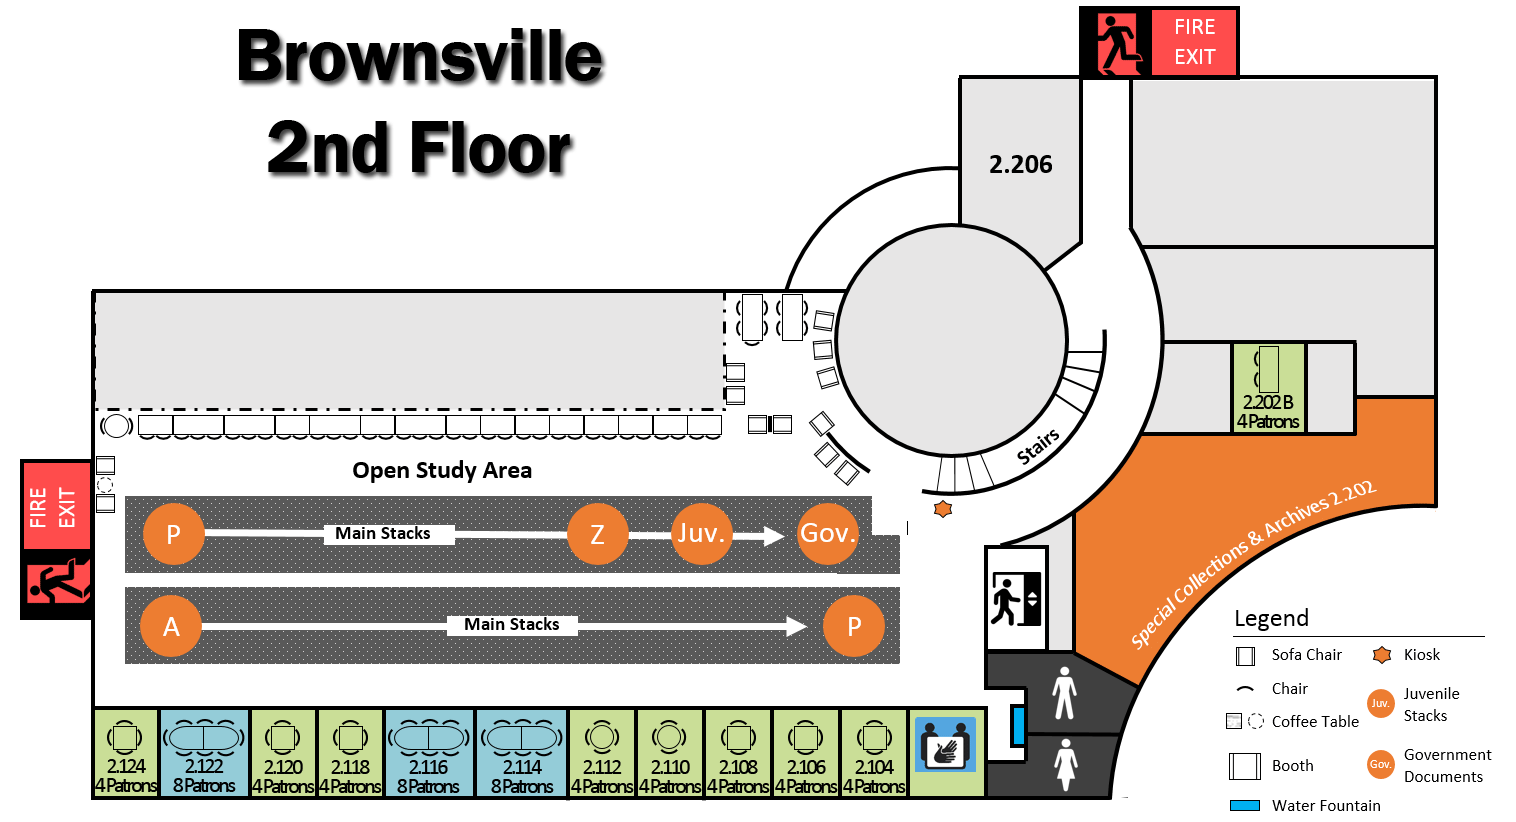 Brownsville Campus 2nd Floor Layout